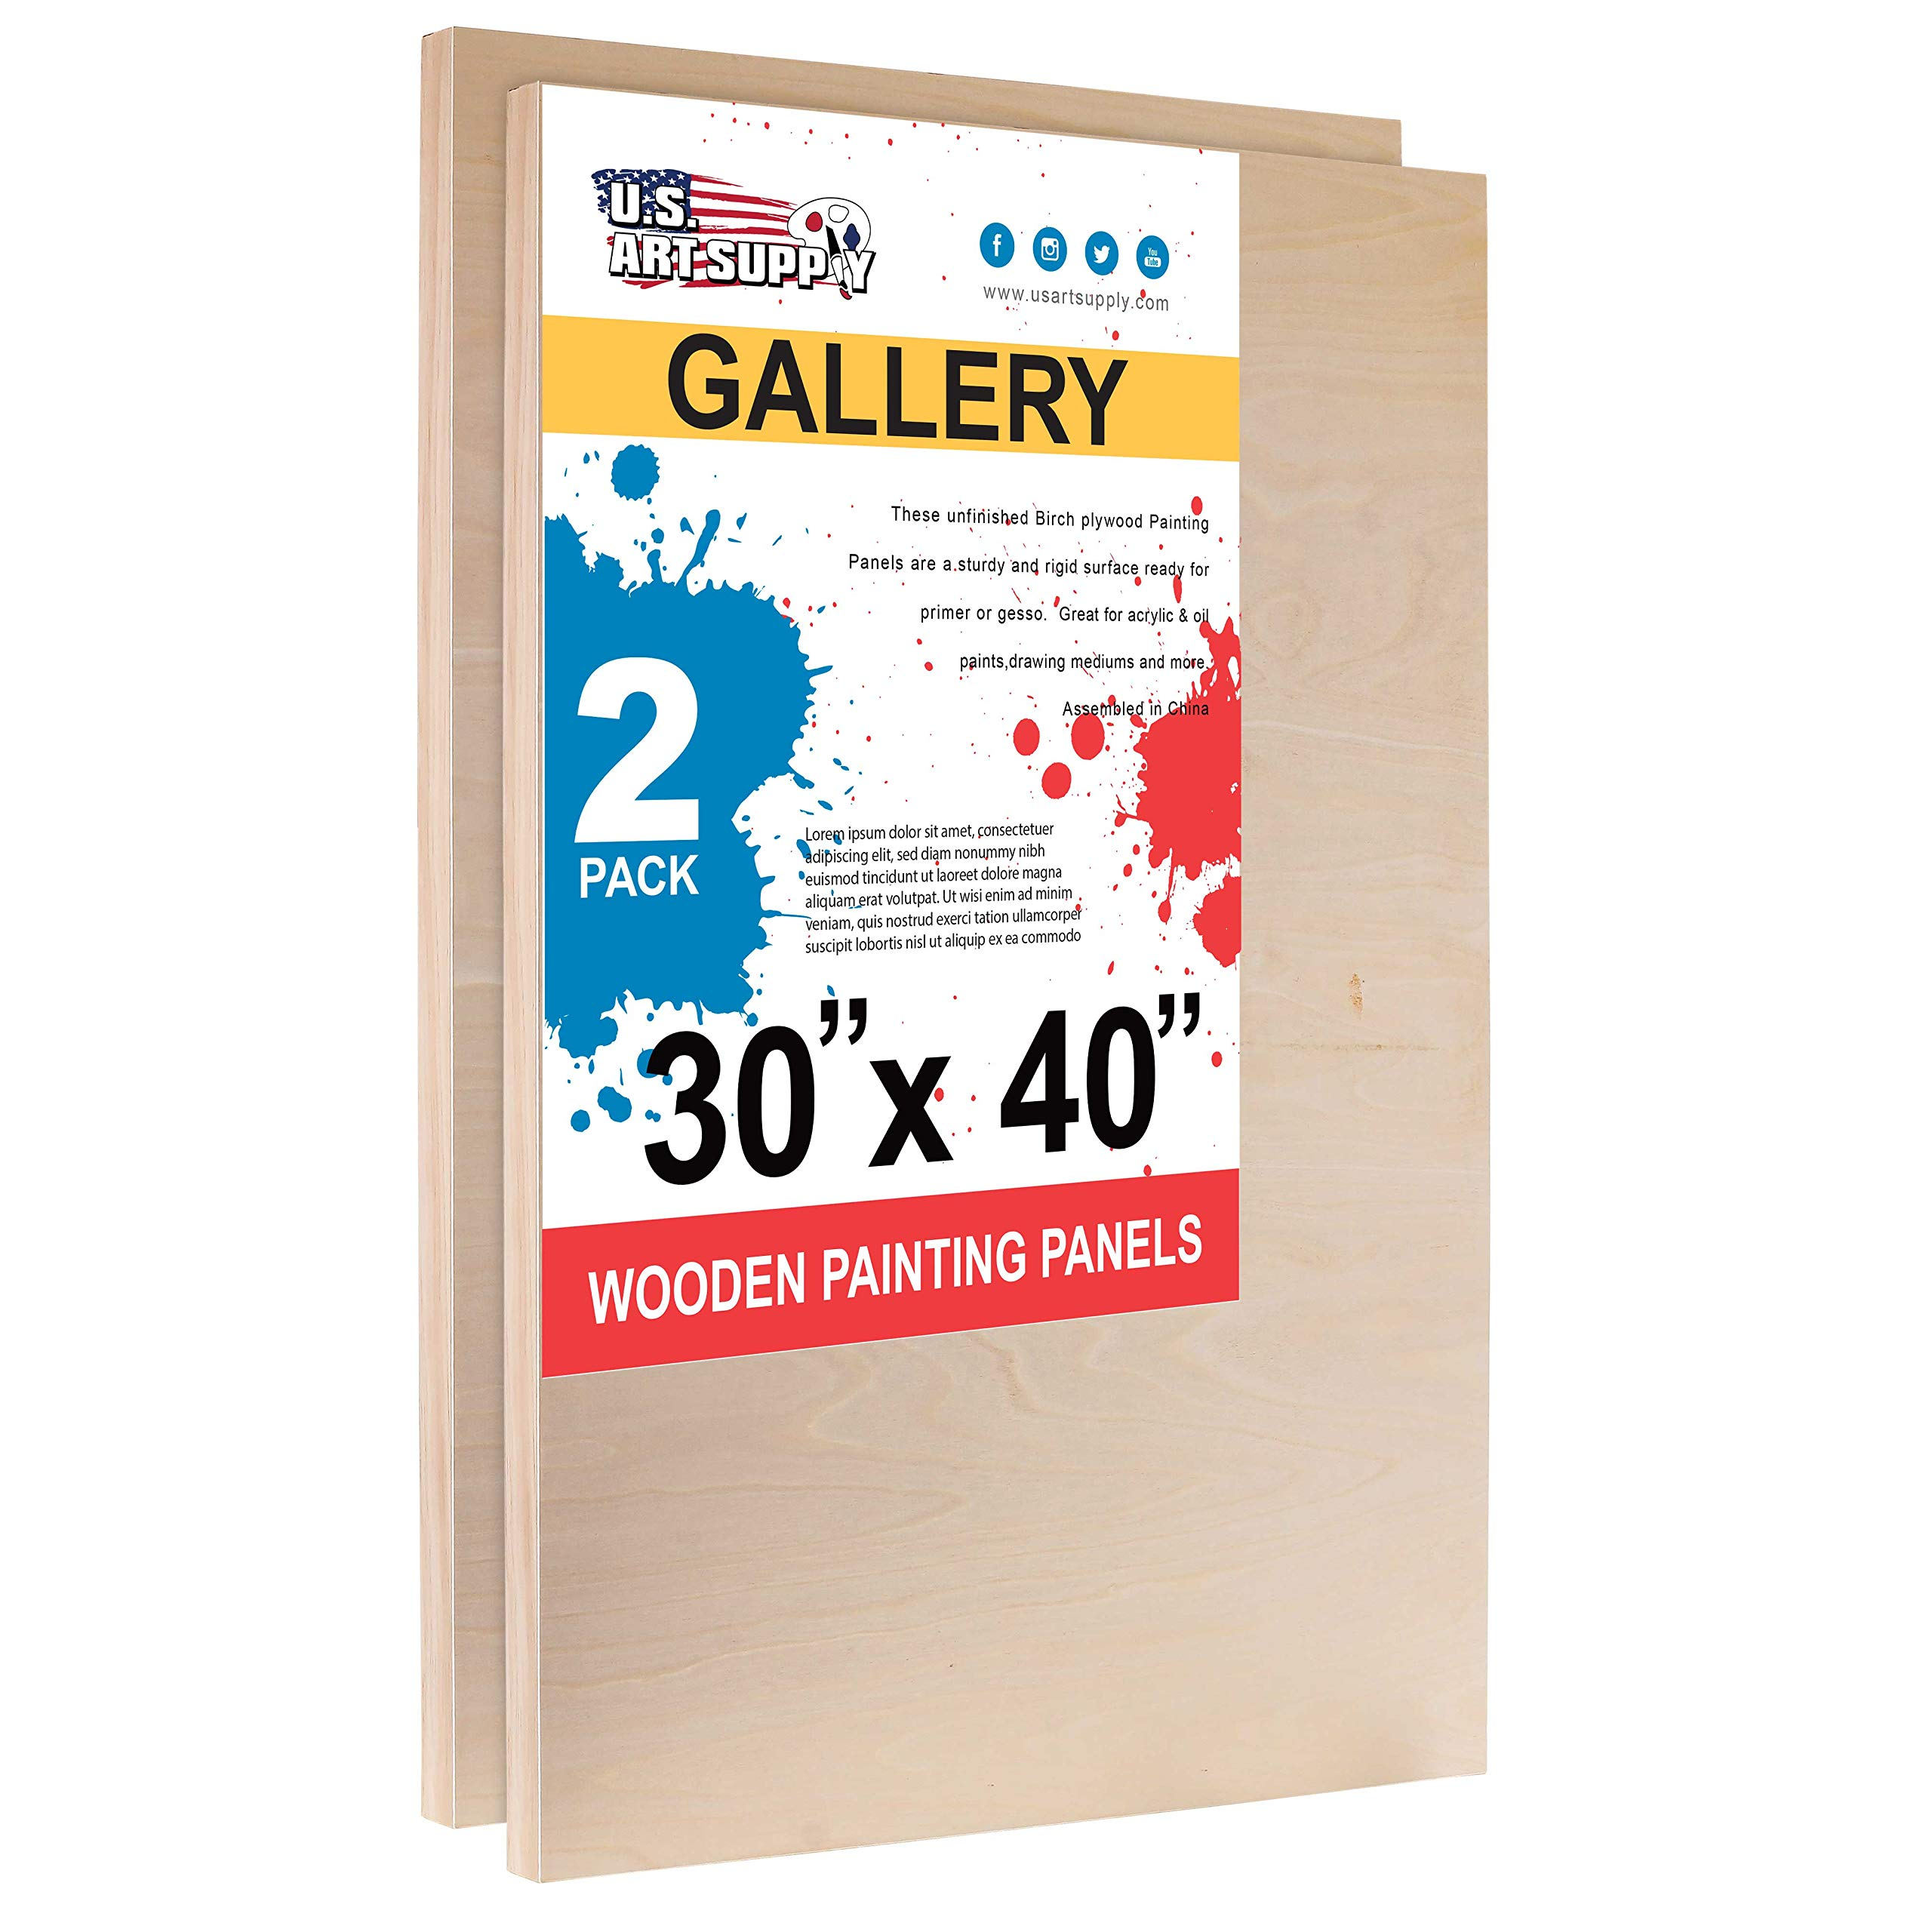 U.S. Art Supply 30'' x 40'' Birch Wood Paint Pouring Panel Boards, Gallery 1-1/2'' Deep Cradle (Pack of 2) - Artist Depth Wooden Wall Canvases - Painting Mixed-Media Craft, Acrylic, Oil, Epoxy Pouring by U.S. Art Supply